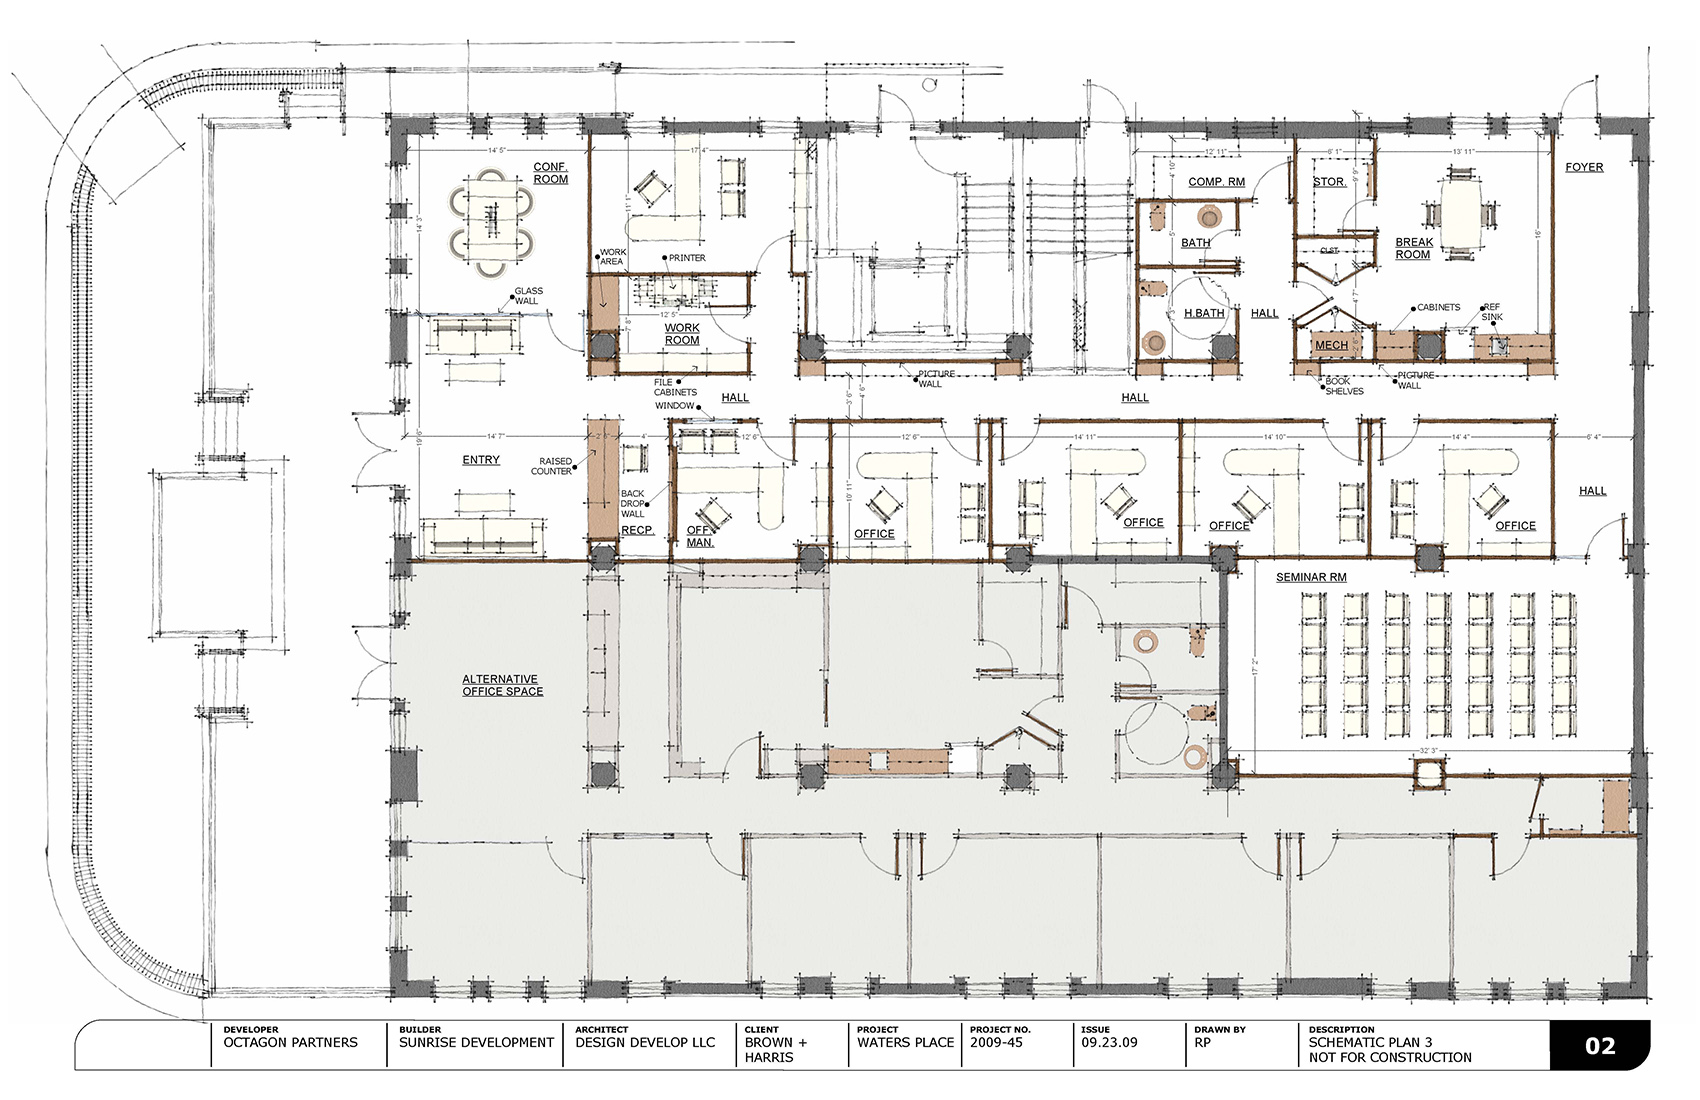 Floor Plans Option 3